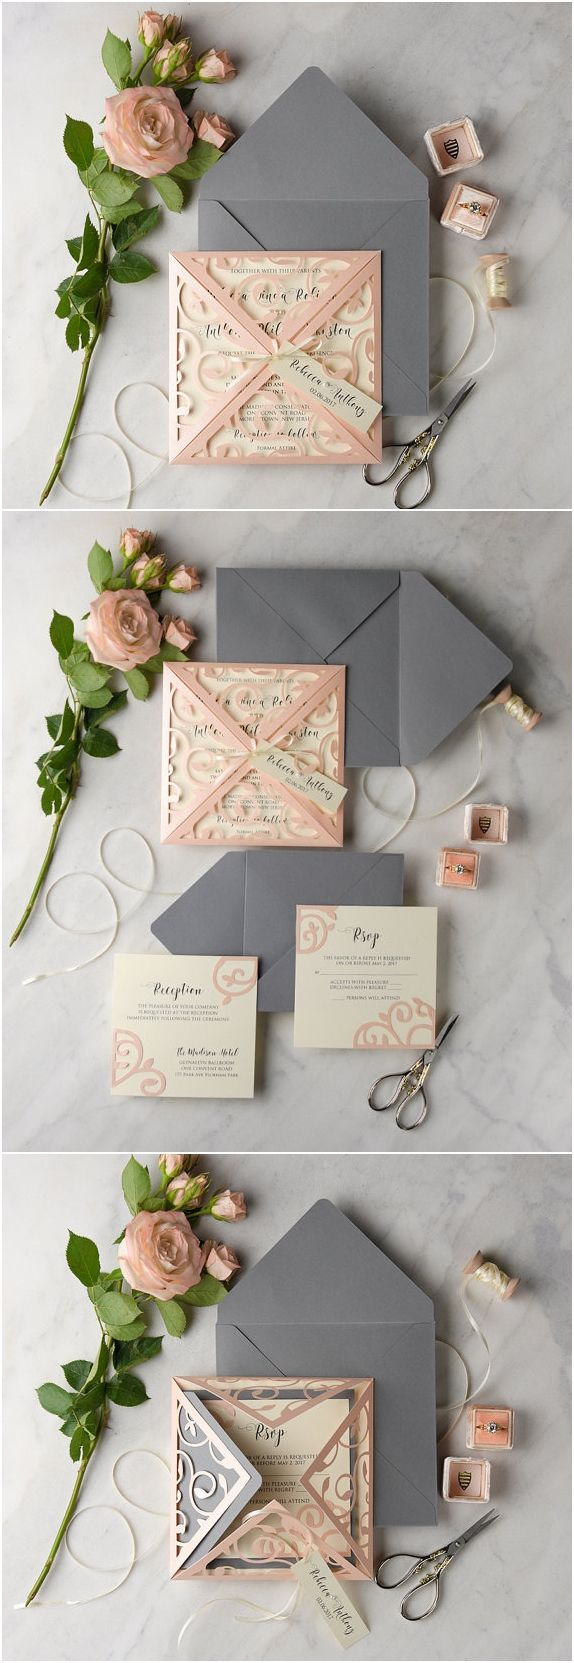 Lace Laser Cut Wedding Invitationa Set, Peach Grey Wedding Invitation, Vintage Wedding Invites / http://www.deerpearlflowers.com/rustic-wedding-invitations/